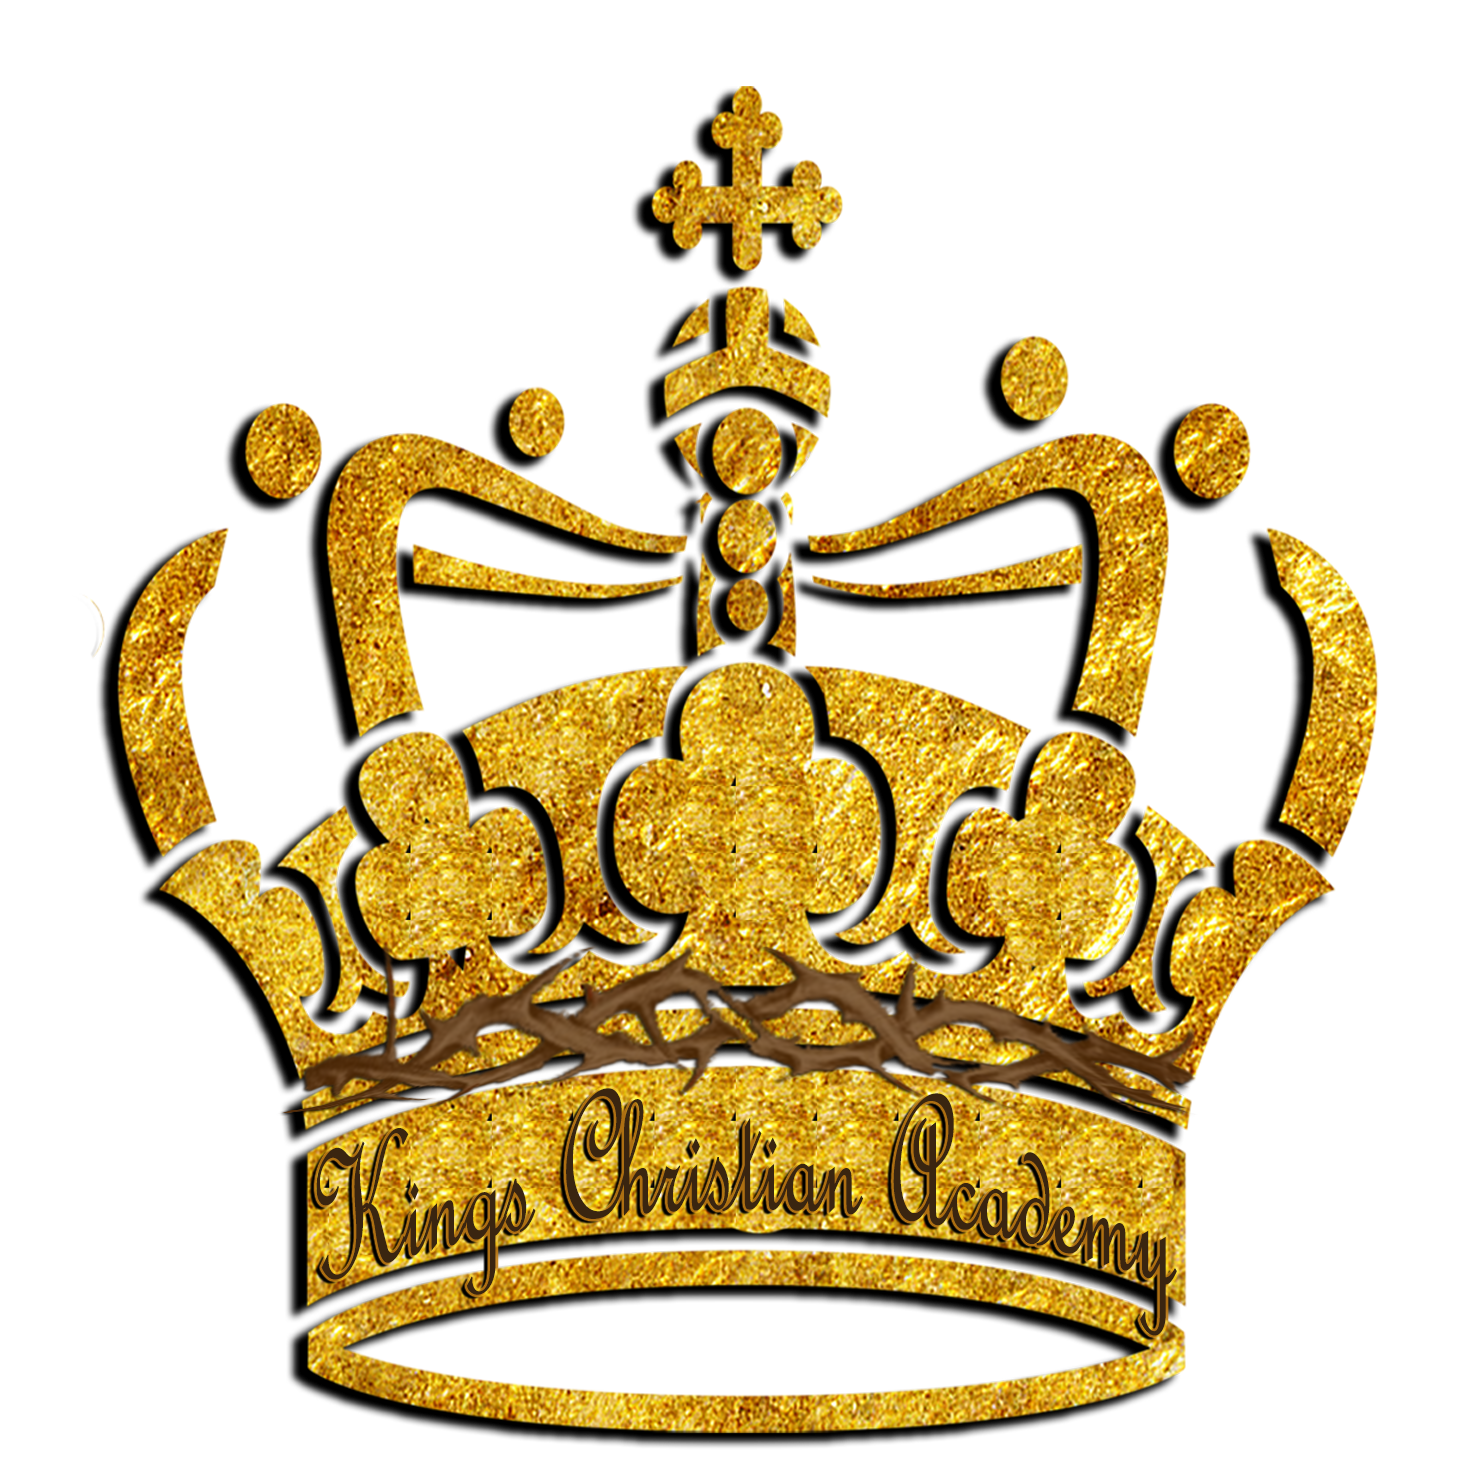 Kings Christian Academy